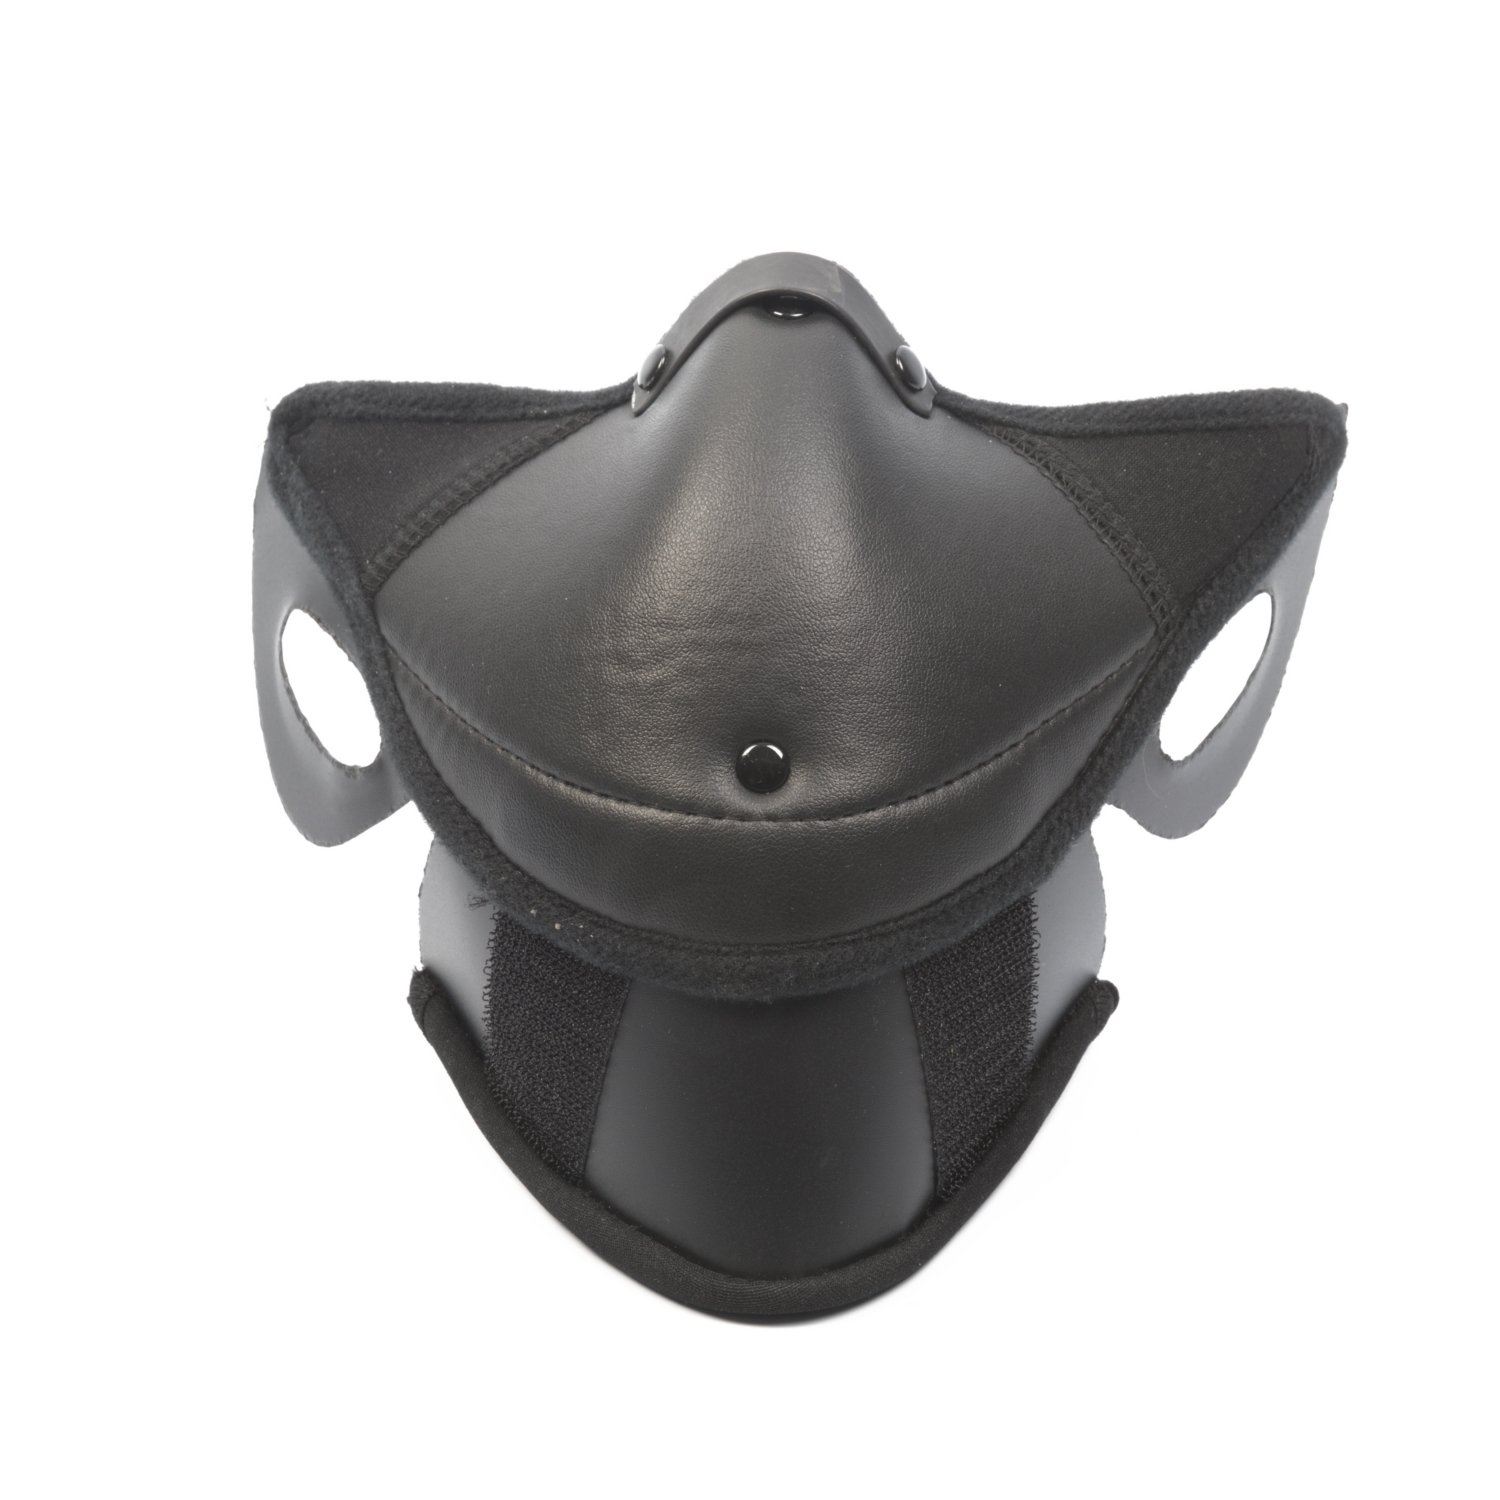 Quest CKX Breath Guard for Helmet One Size Fits All by CKX